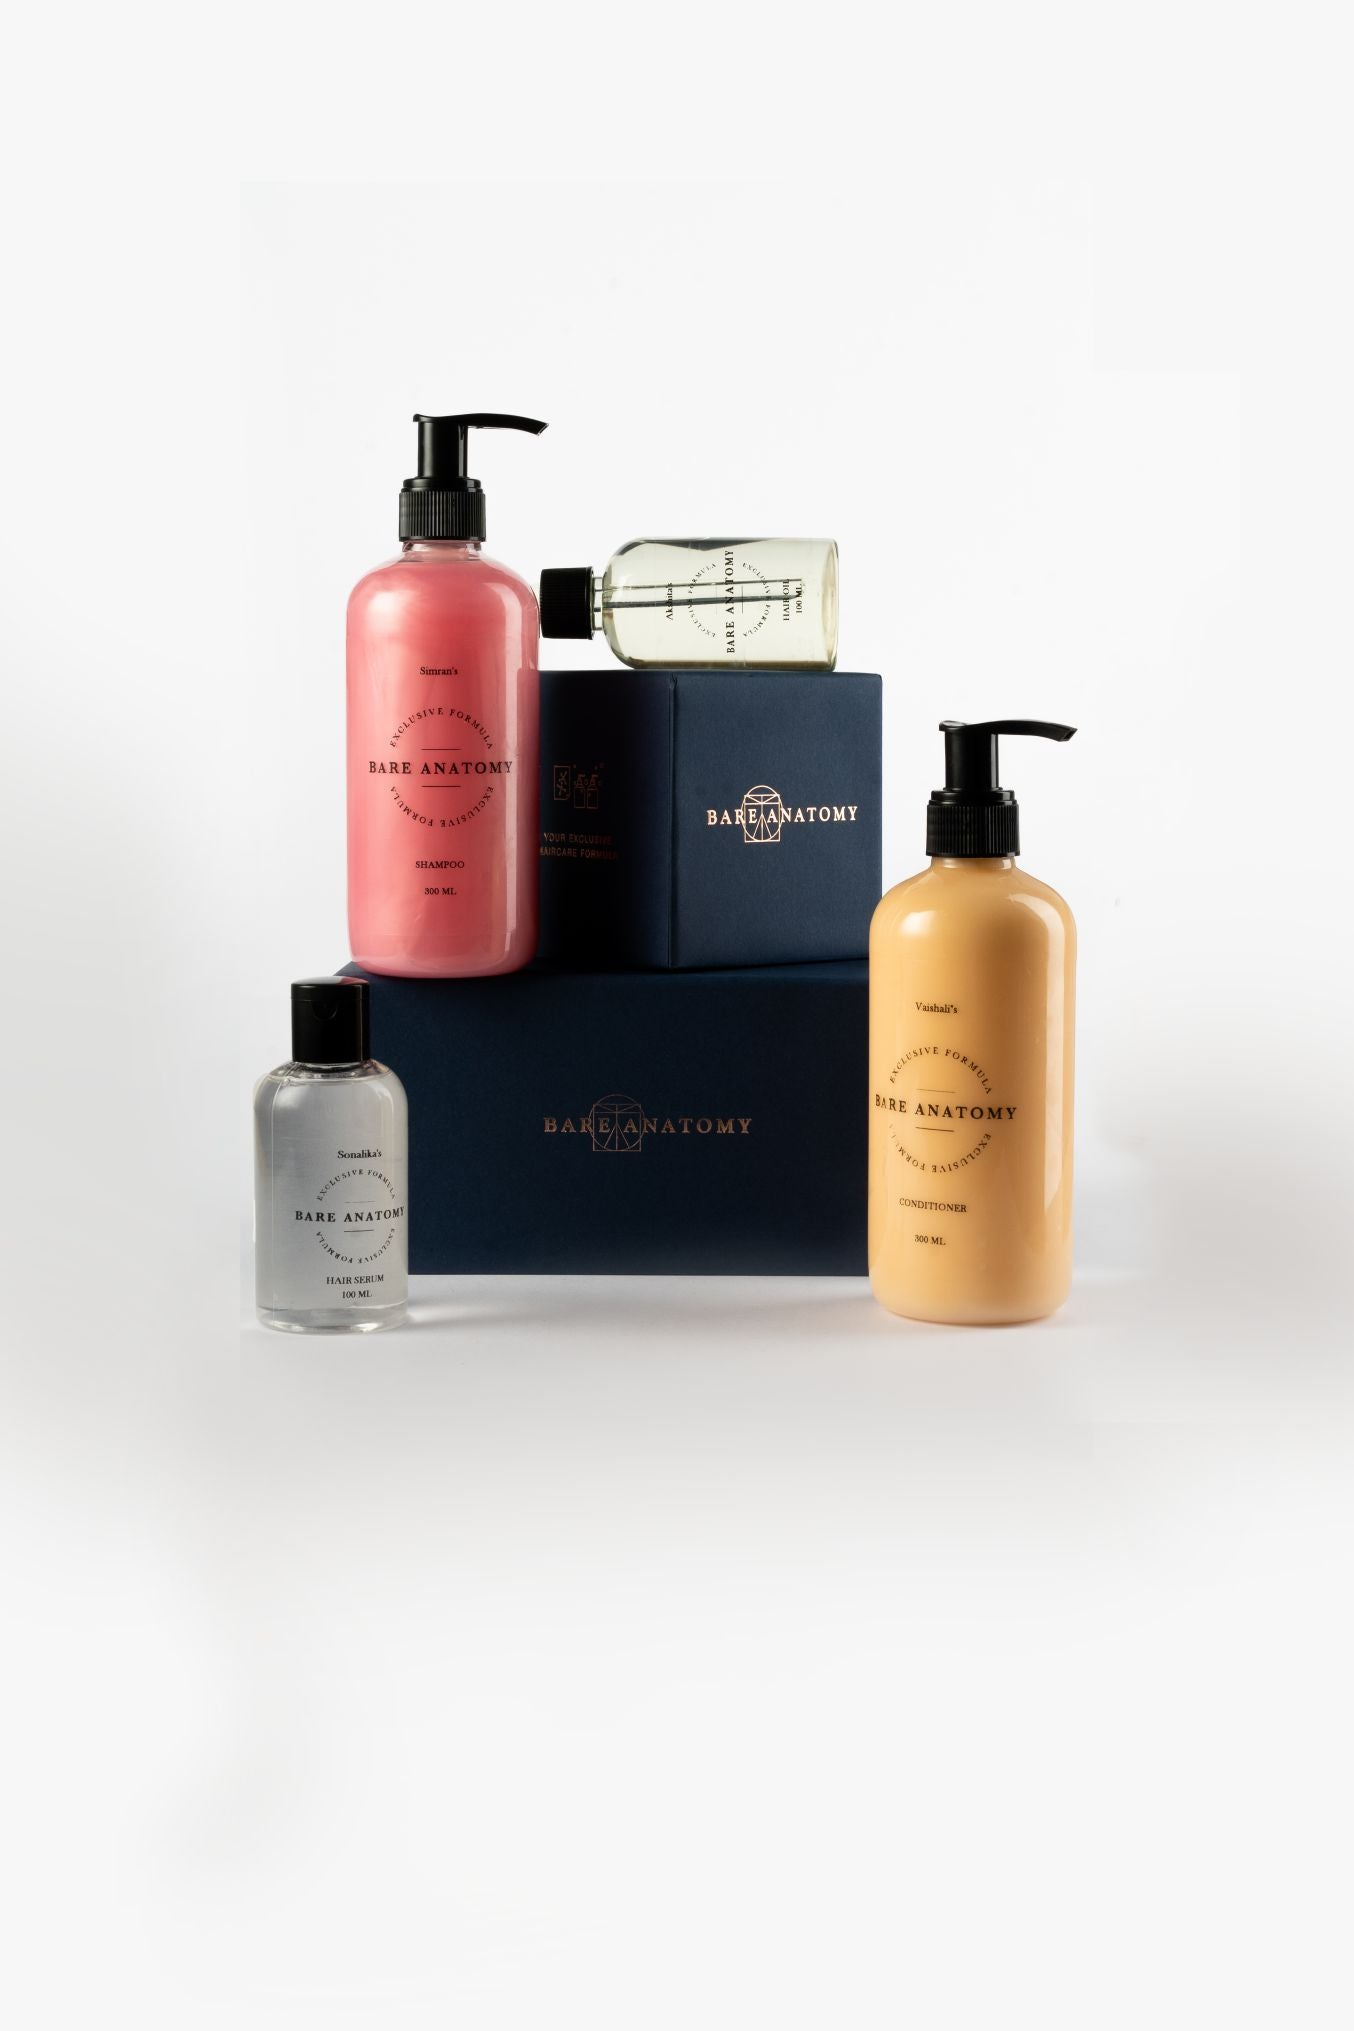 Bare Anatomy A personalized hair care kit, made just for your hair